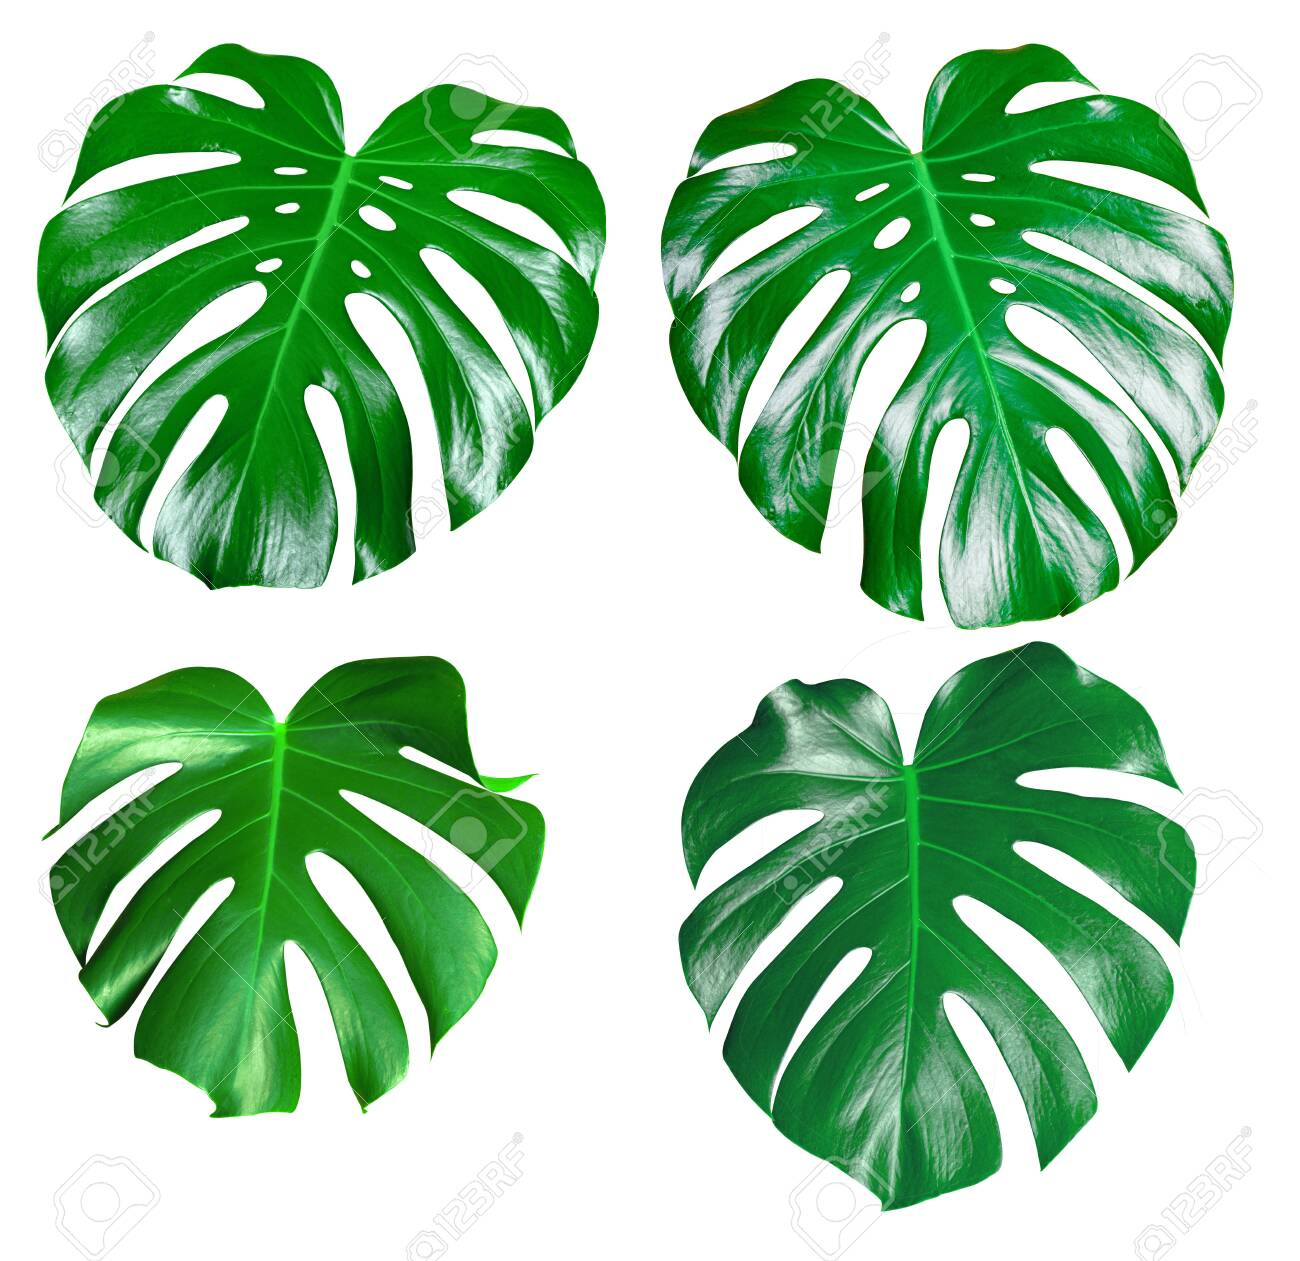 Monstera green juicy fresh leaf isolated on a white background - 139142660